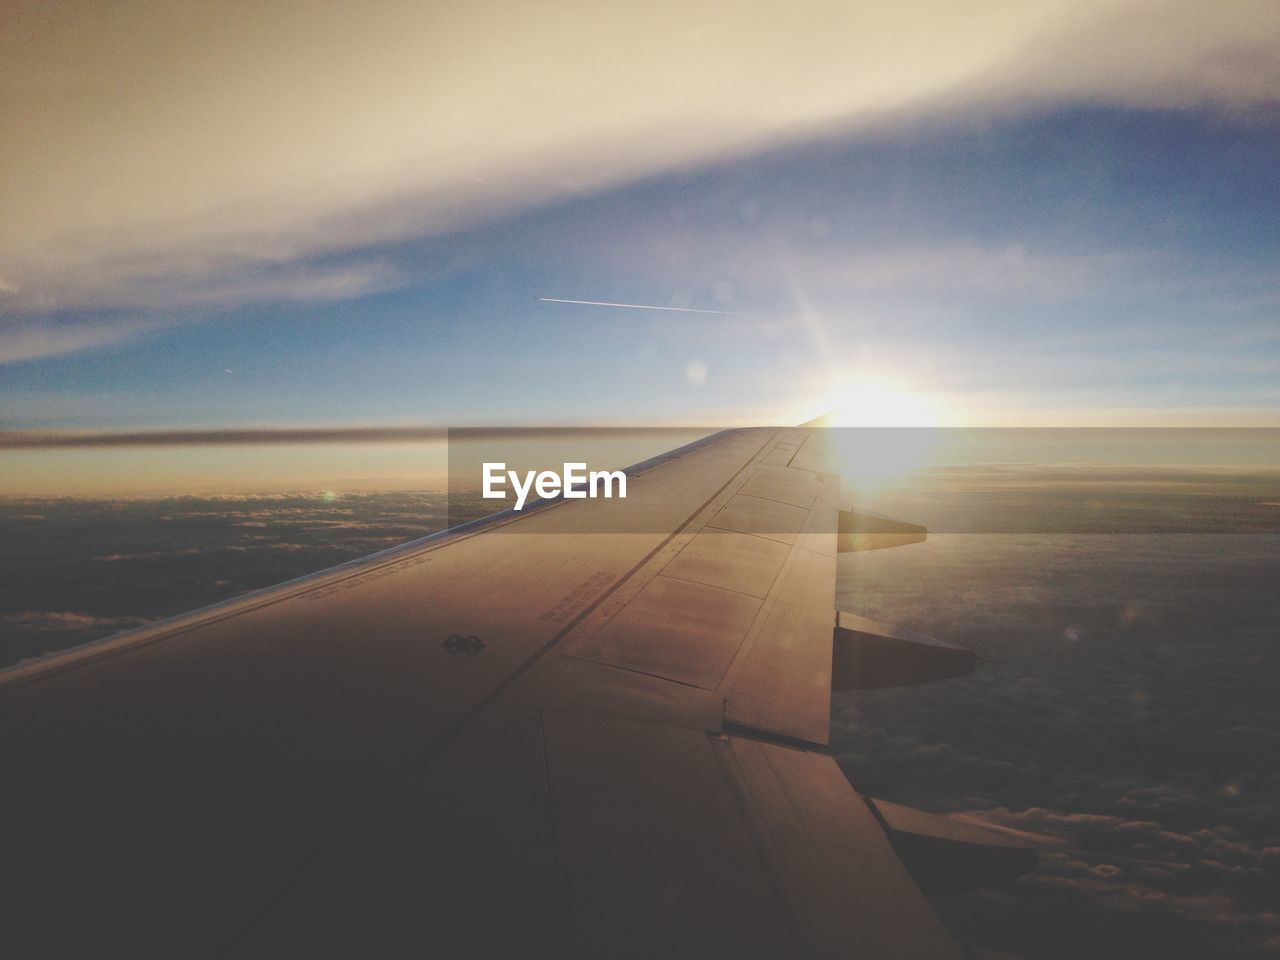 airplane, airplane wing, journey, transportation, sunset, aerial view, flying, travel, air vehicle, sky, aircraft wing, sun, no people, scenics, mode of transport, cloud - sky, lens flare, mid-air, sunlight, nature, beauty in nature, tranquil scene, outdoors, landscape, vehicle part, day, close-up